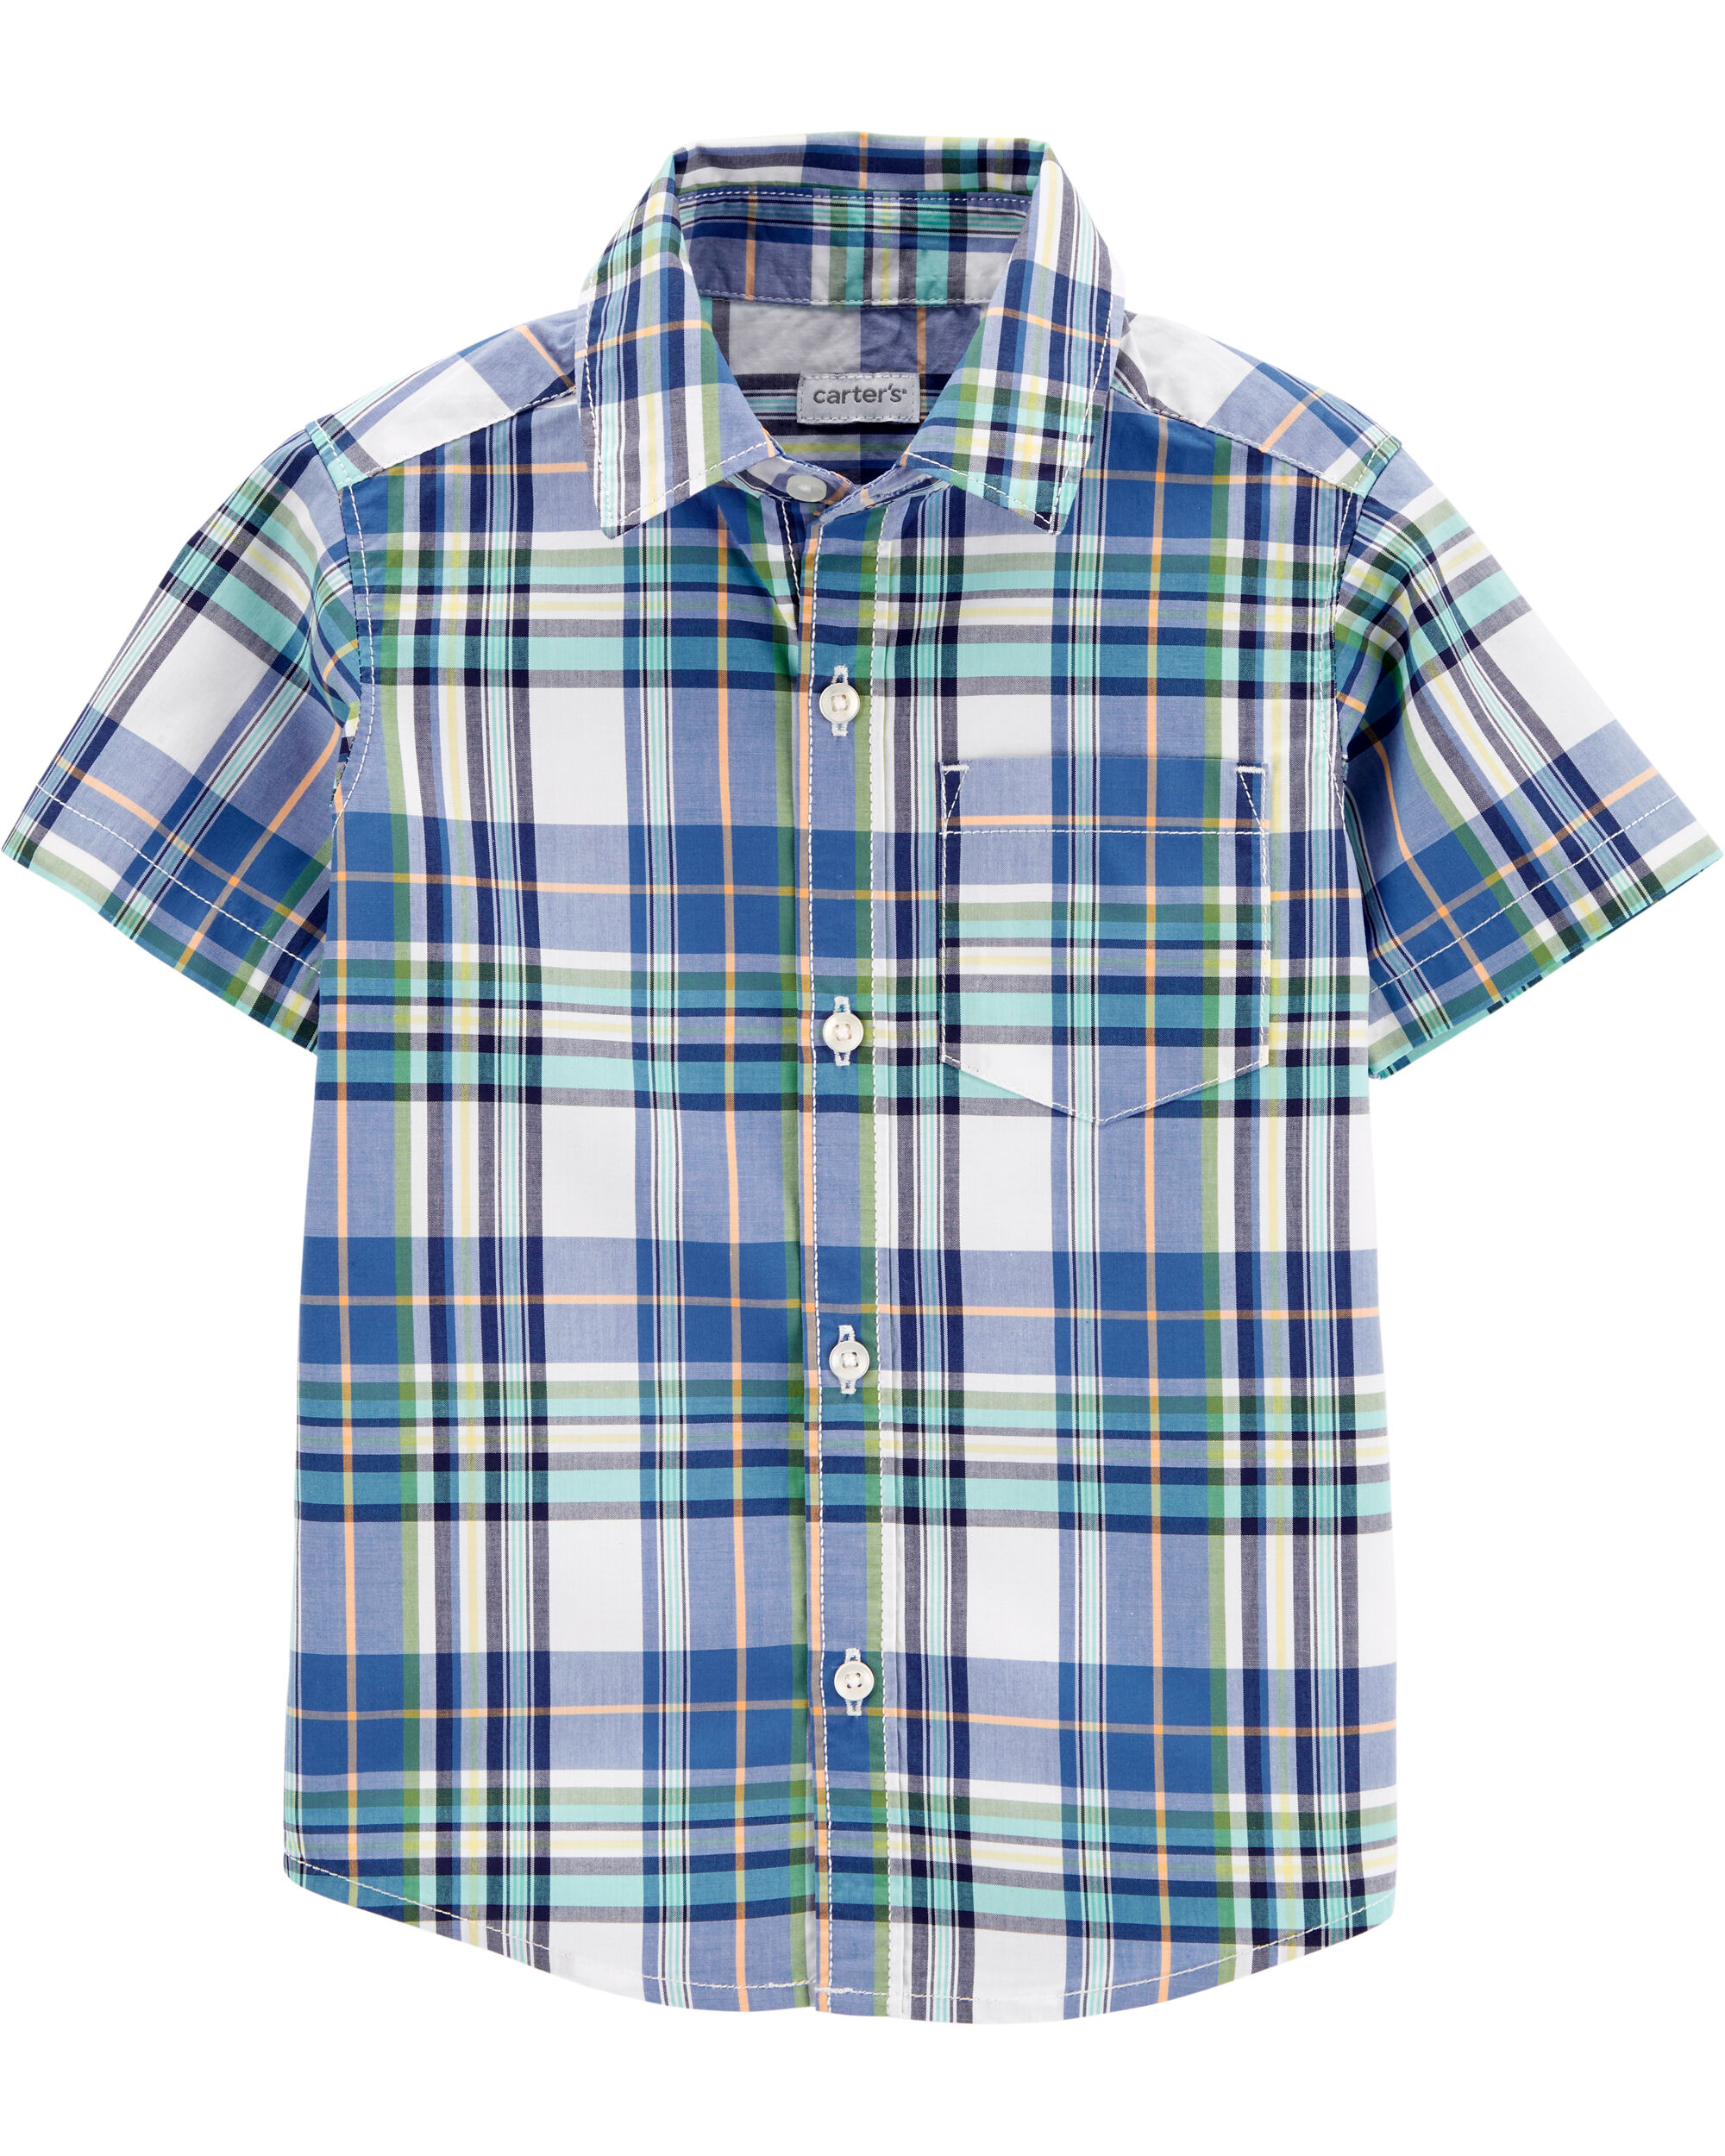 3m Navy Carters Boys Star Print Chambray Button-Front Shirt